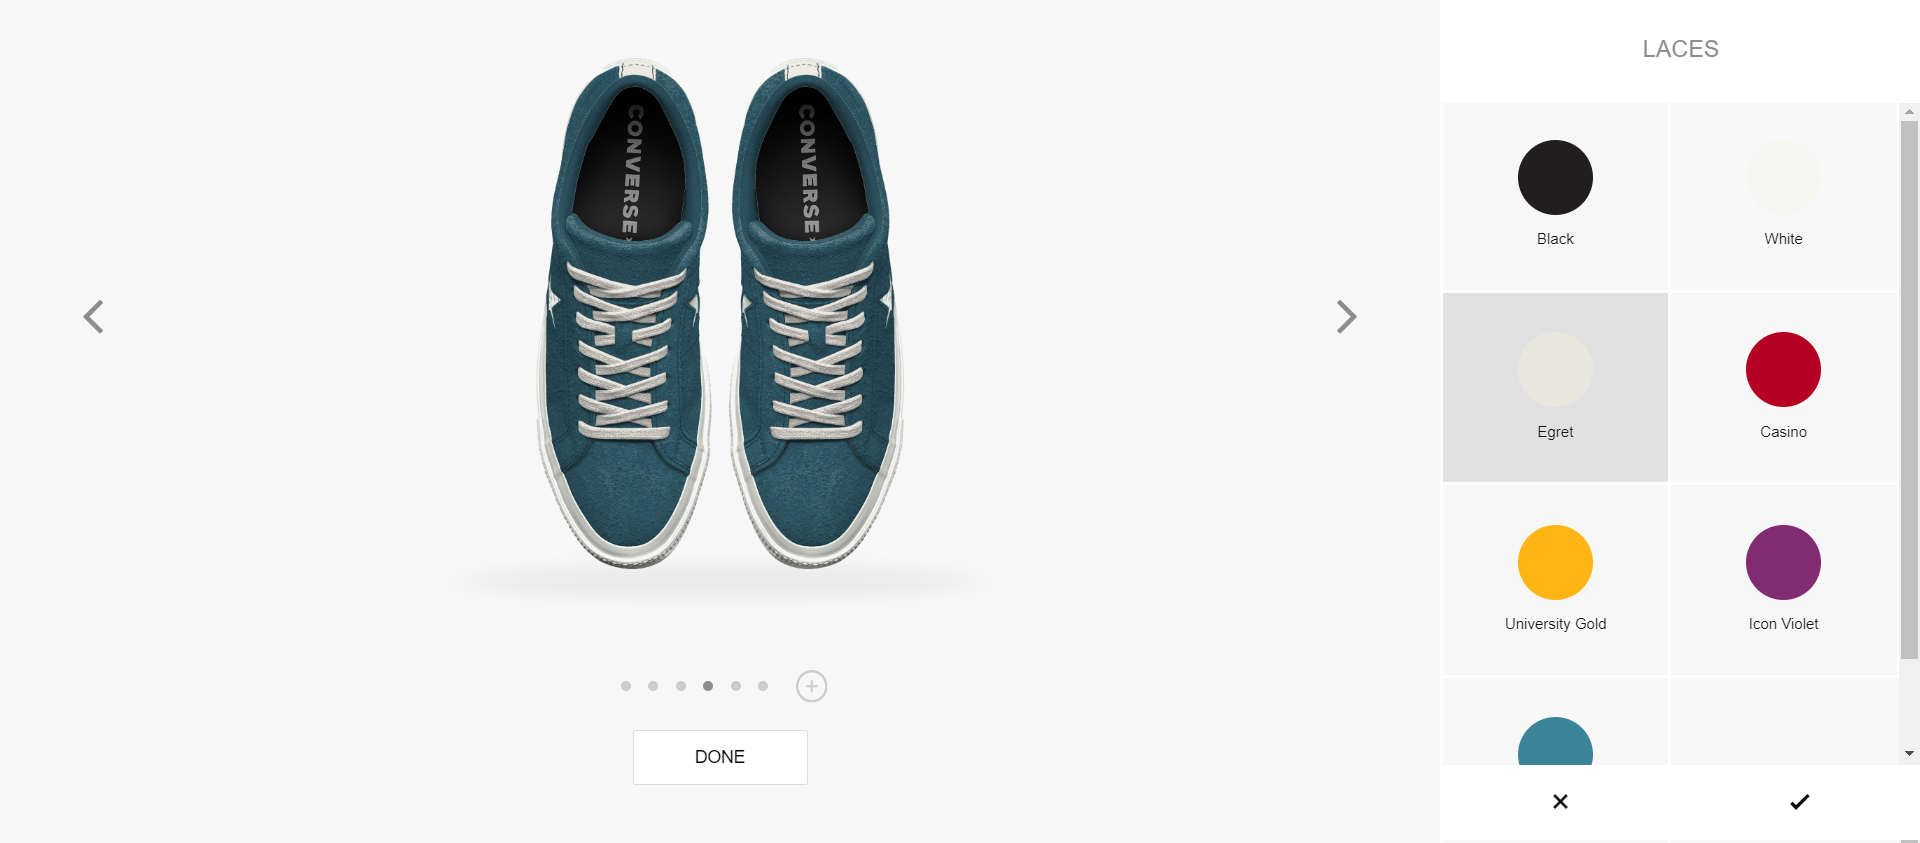 2da79dbe73b2 Converse website where you can personalized the products  Web  Digital   Personalization  Fashion  Shoes